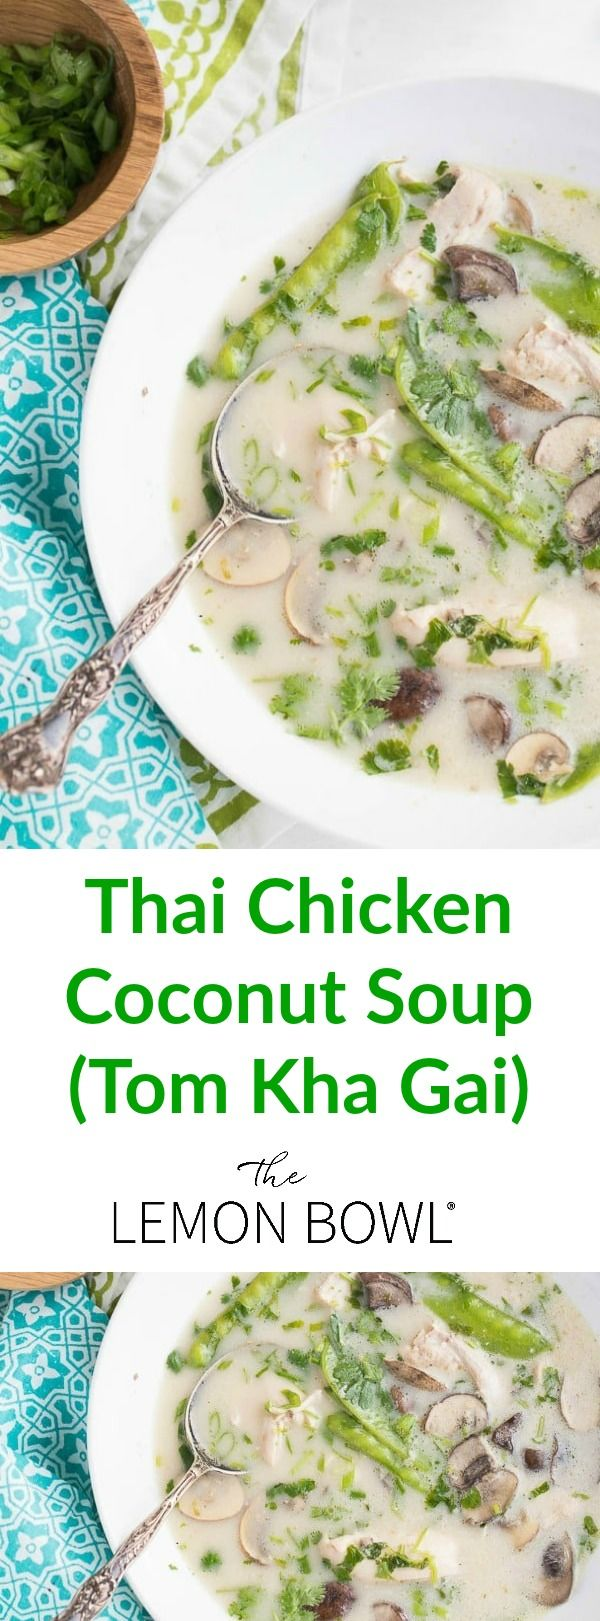 Skip the takeout menu and make this fresh and fragrant slow cooker Thai chicken coconut soup (tom kha gai) at home!